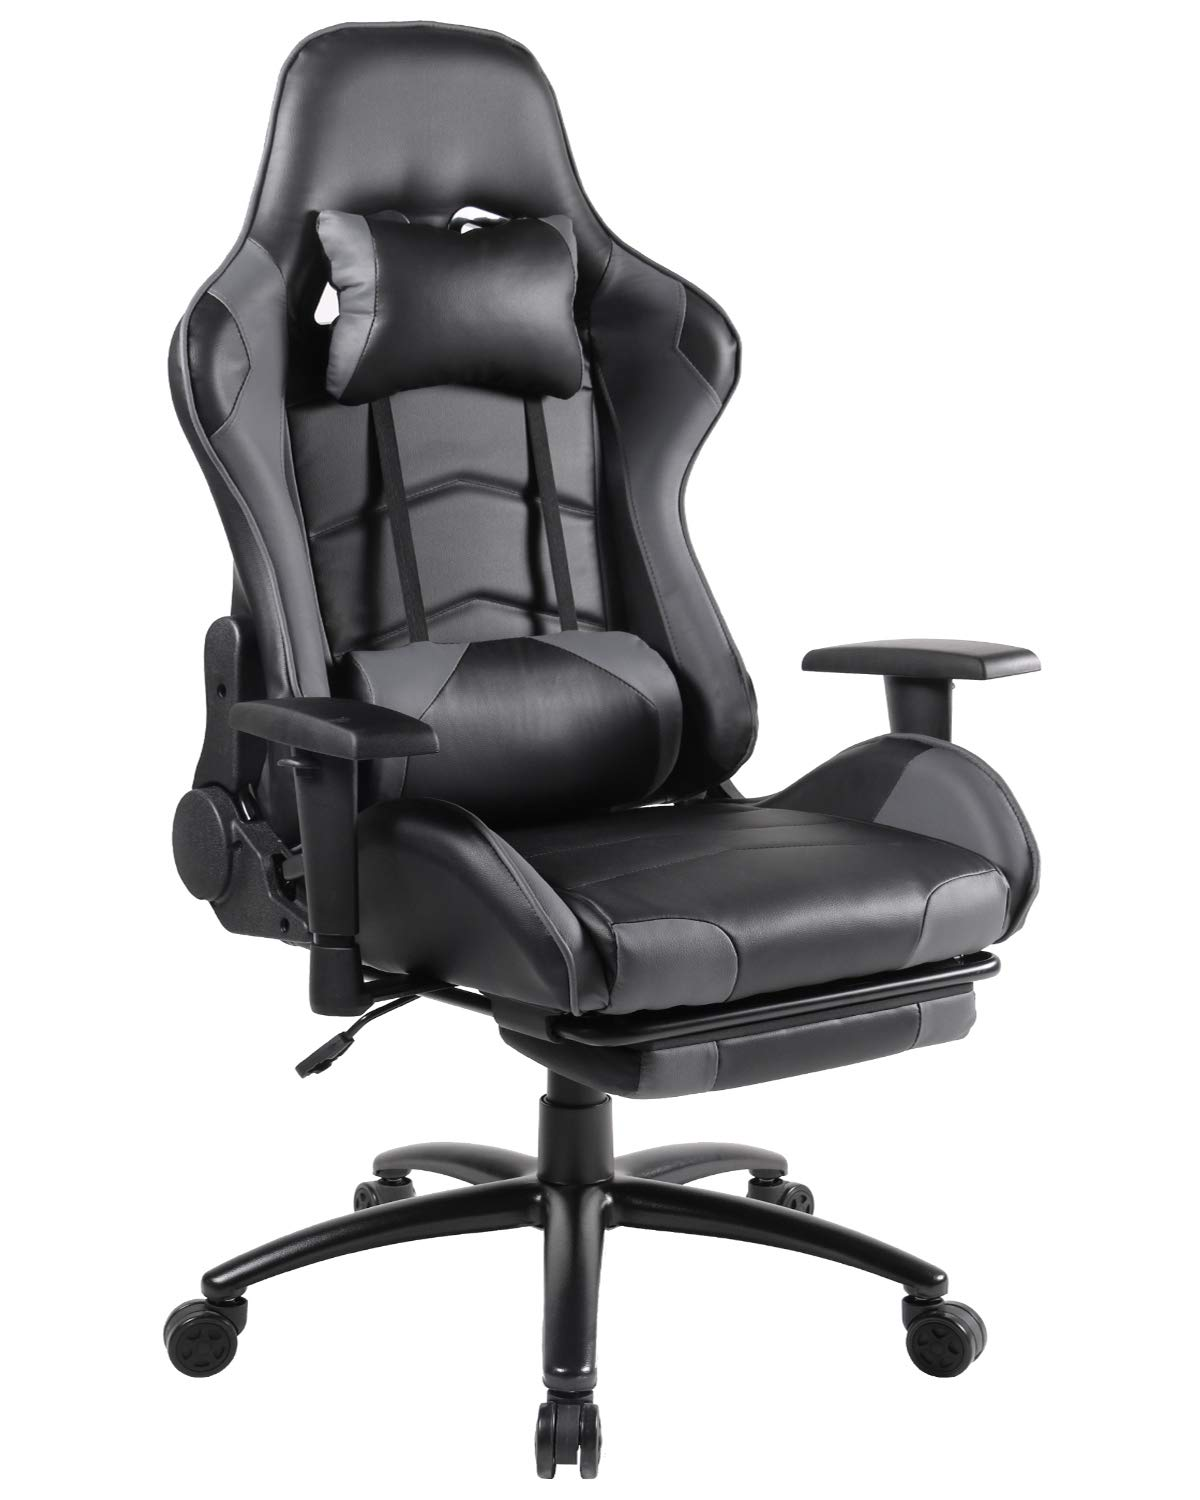 Gaming Chair Racing Office Chair High Back PU Leather Computer Desk Executive and Ergonomic Swivel Chair with Headrest